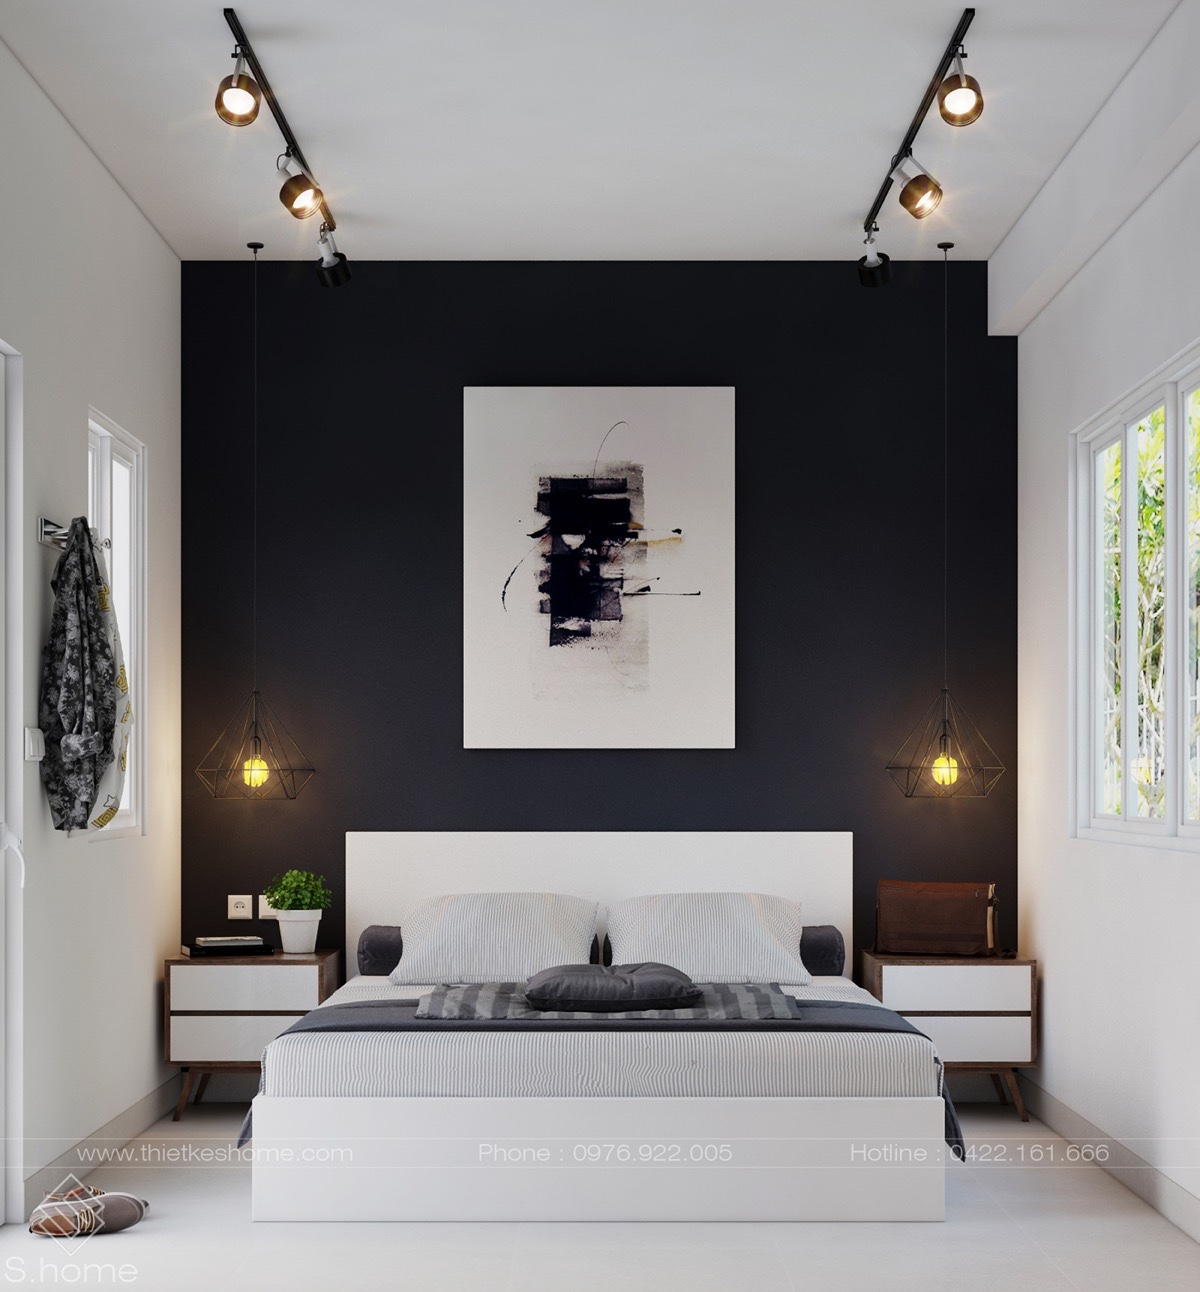 modern bedroom design with black and white | 40 Beautiful Black & White Bedroom Designs